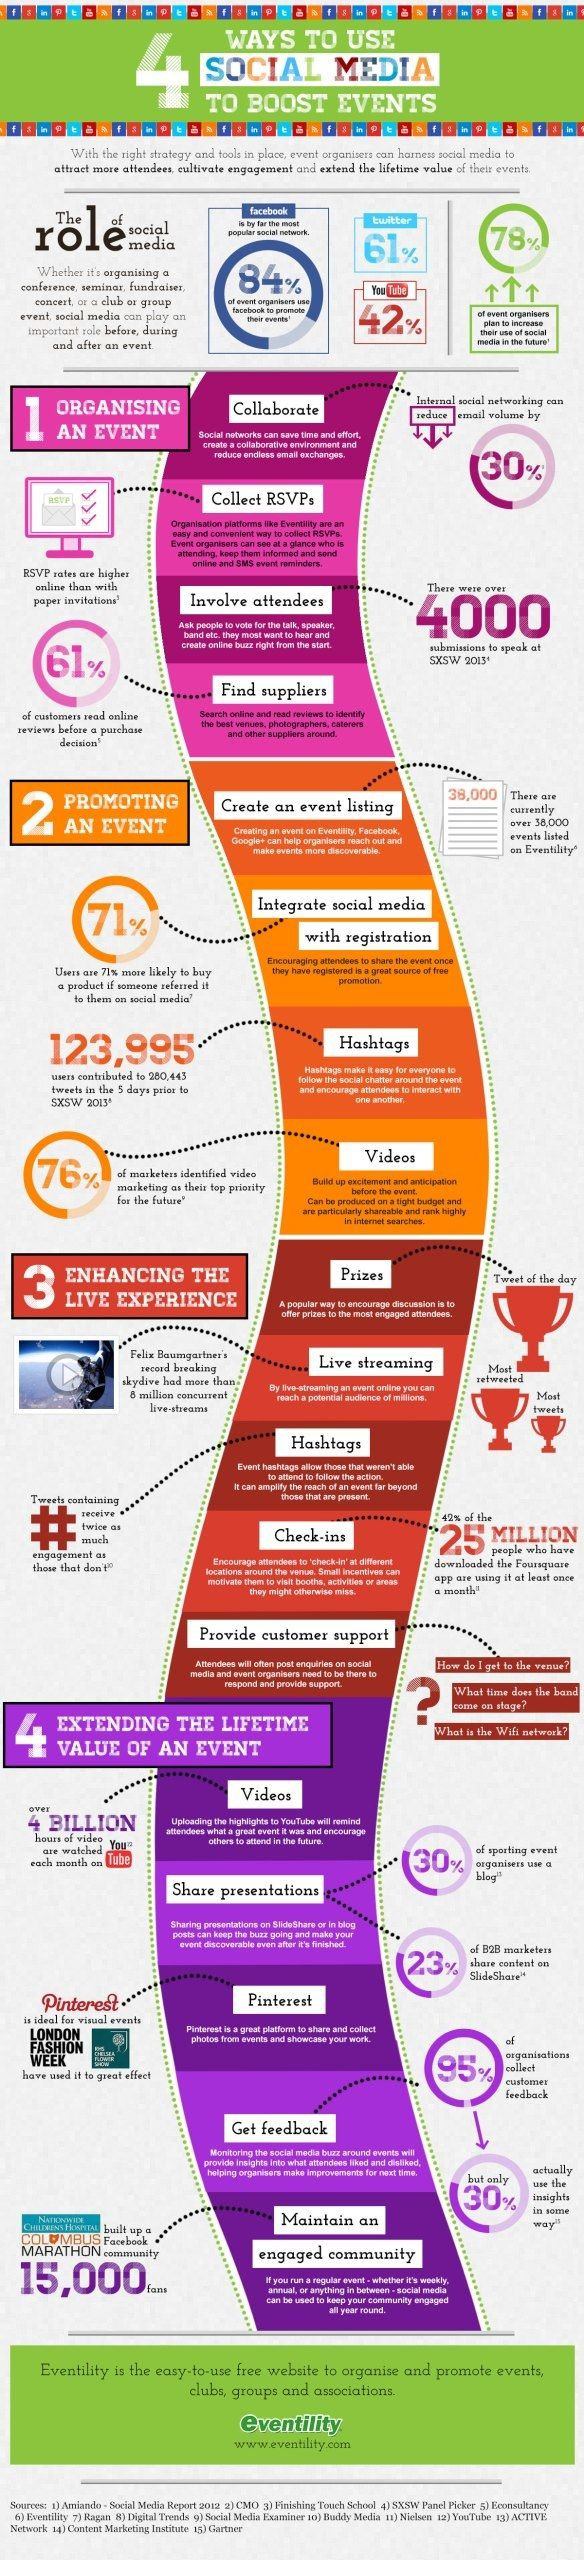 Social Media's Impact on Event Planning -- Eventility has published an infographic displaying the ways your organization should incorporate social networking into four key stages of an event: at the time of organizing, during the promotional period, in synch with the event as it's happening, and in the days afterward. / Apr 26 '13